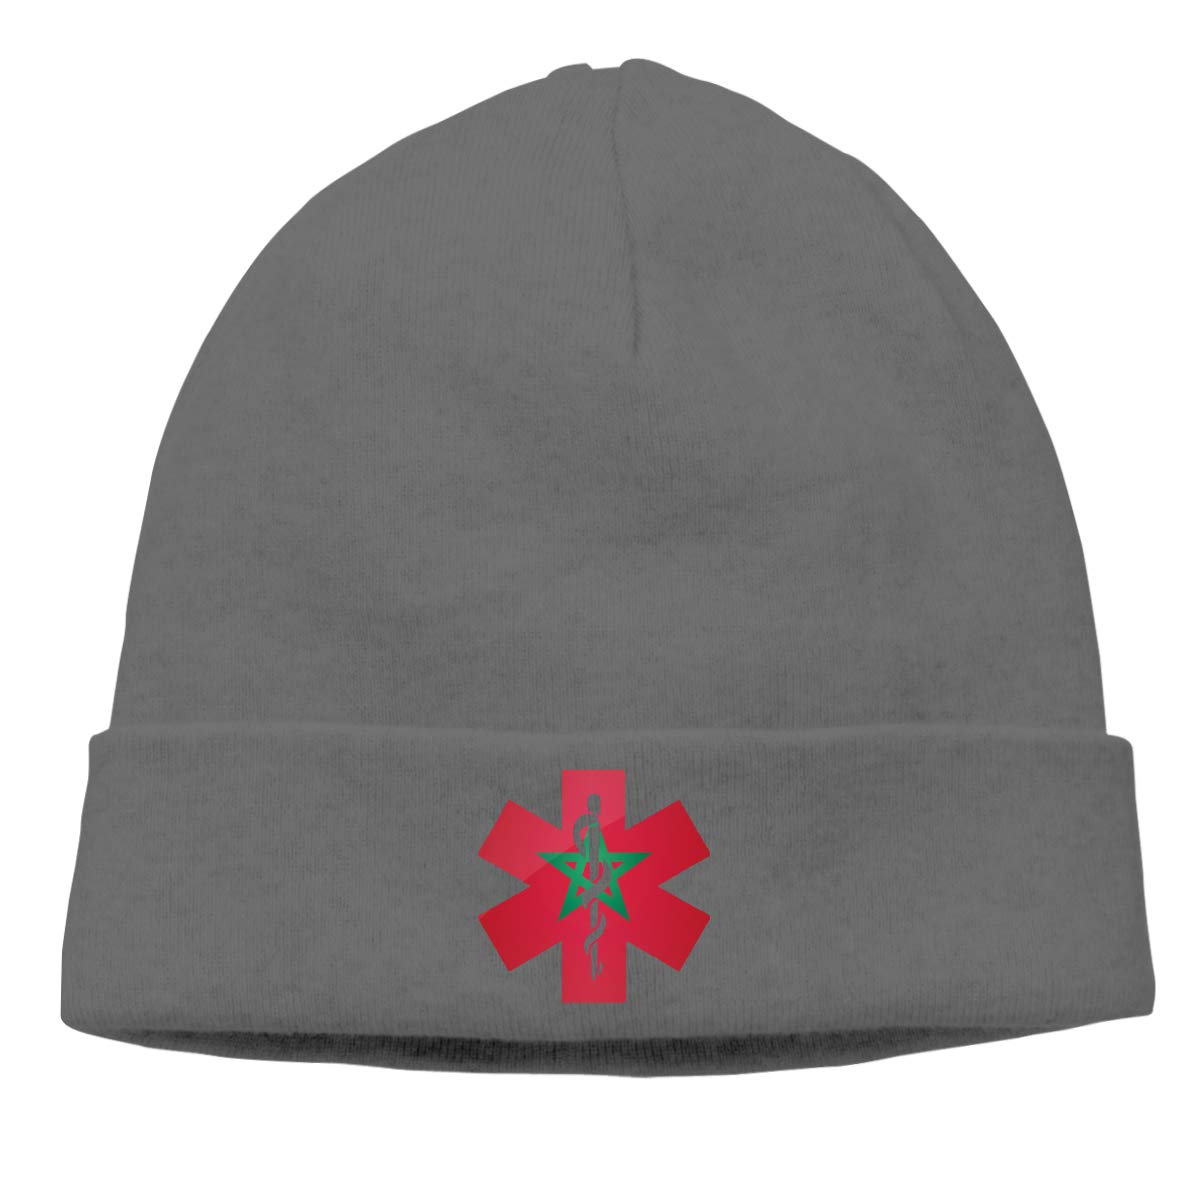 Flag of Morocco EMT DFKD JKFD Unisex Knitted Hat Skull Hat Beanie Cap for Mens and Womens